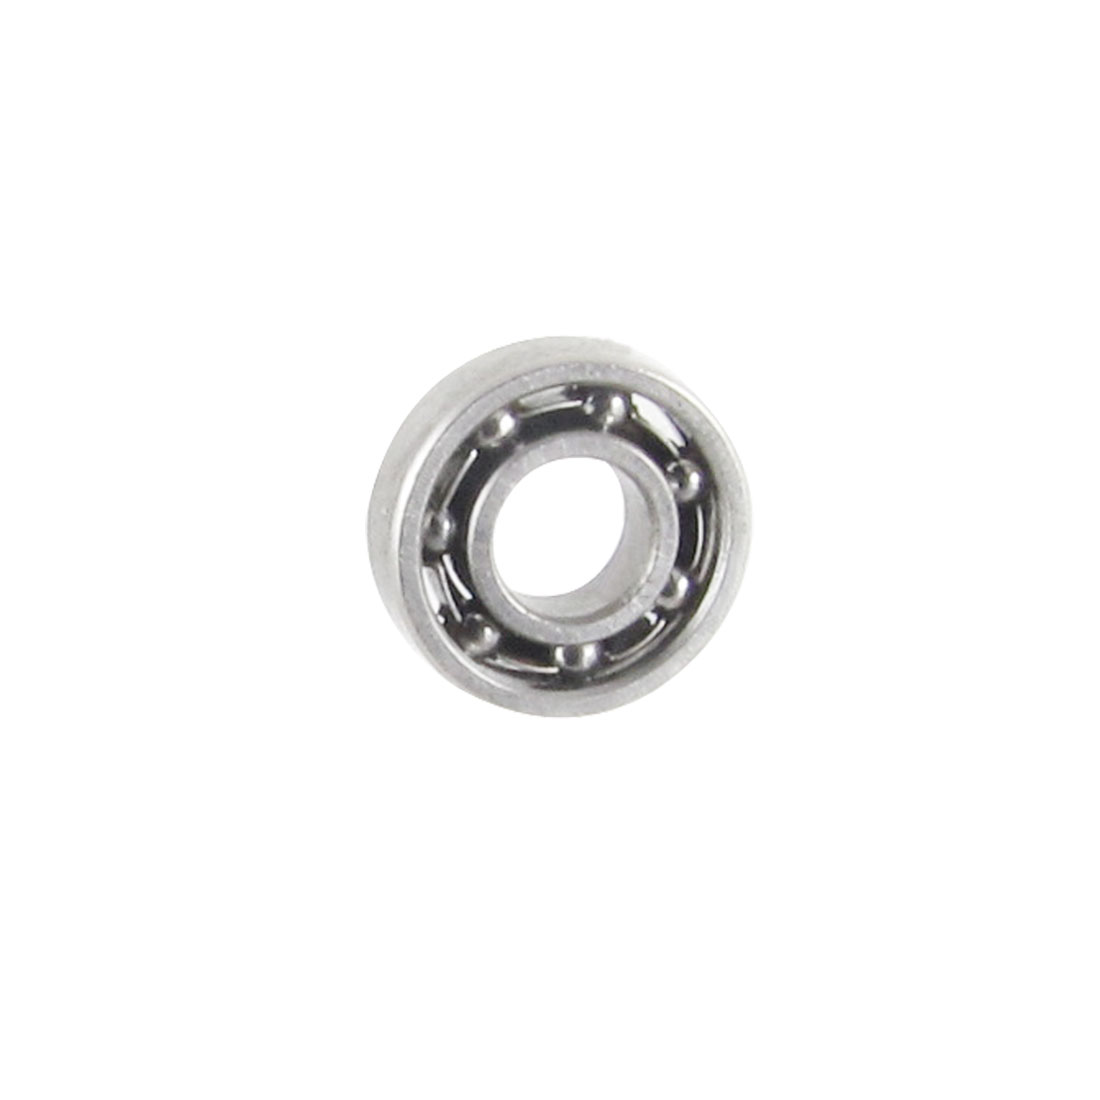 Silver Tone Metal Deep Groove Radial Ball Bearing 3mm x 7mm x 2mm